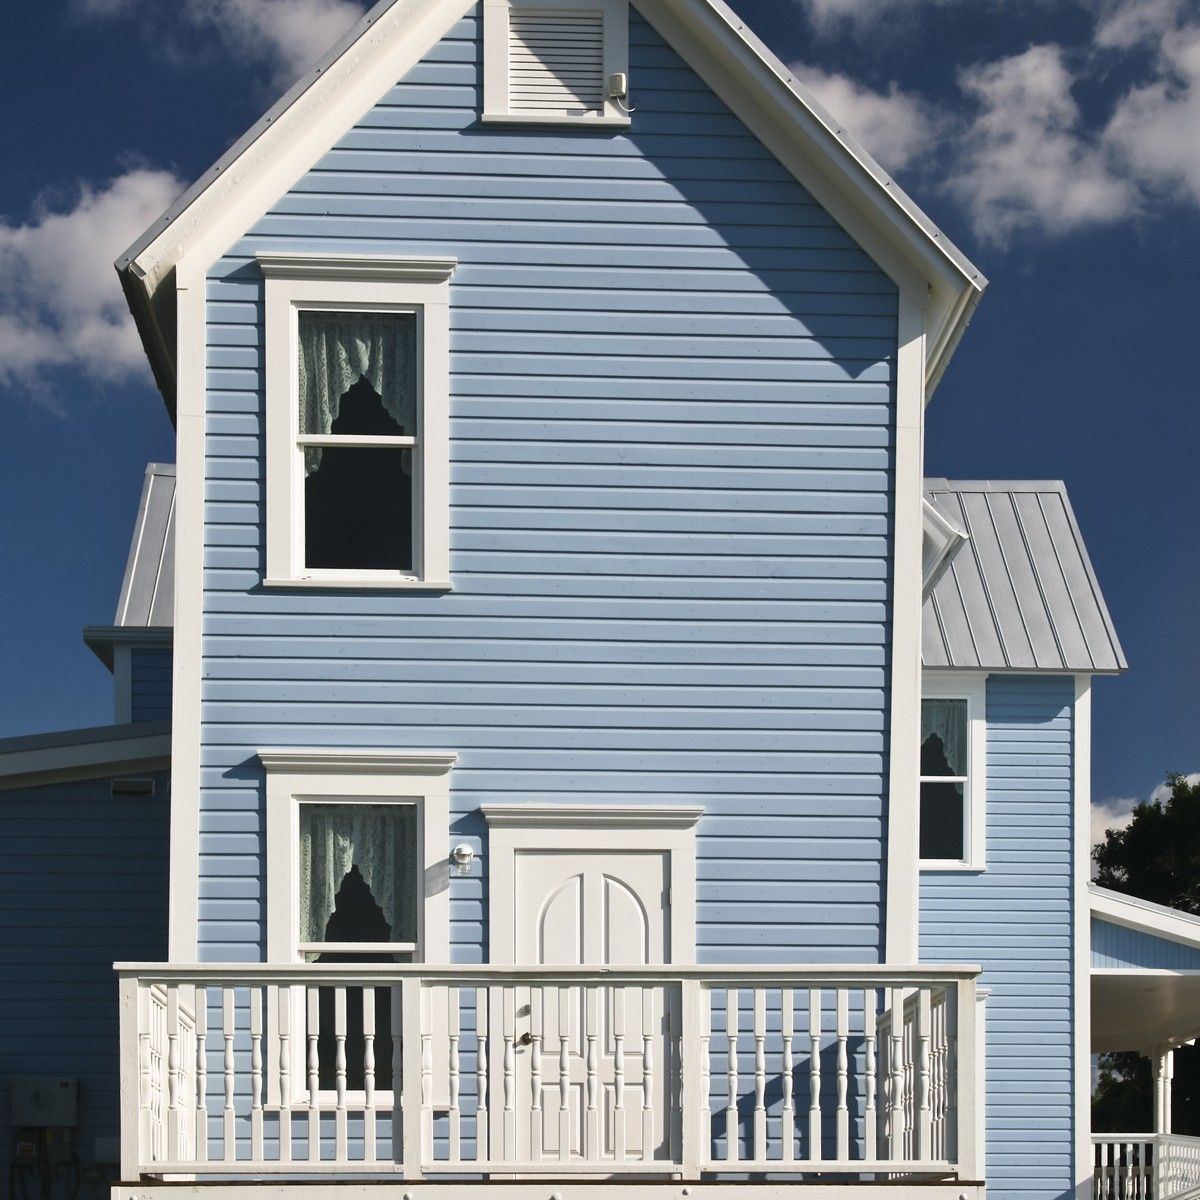 New england cladding uk google search exterior ideas - Exterior tongue and groove cladding ...